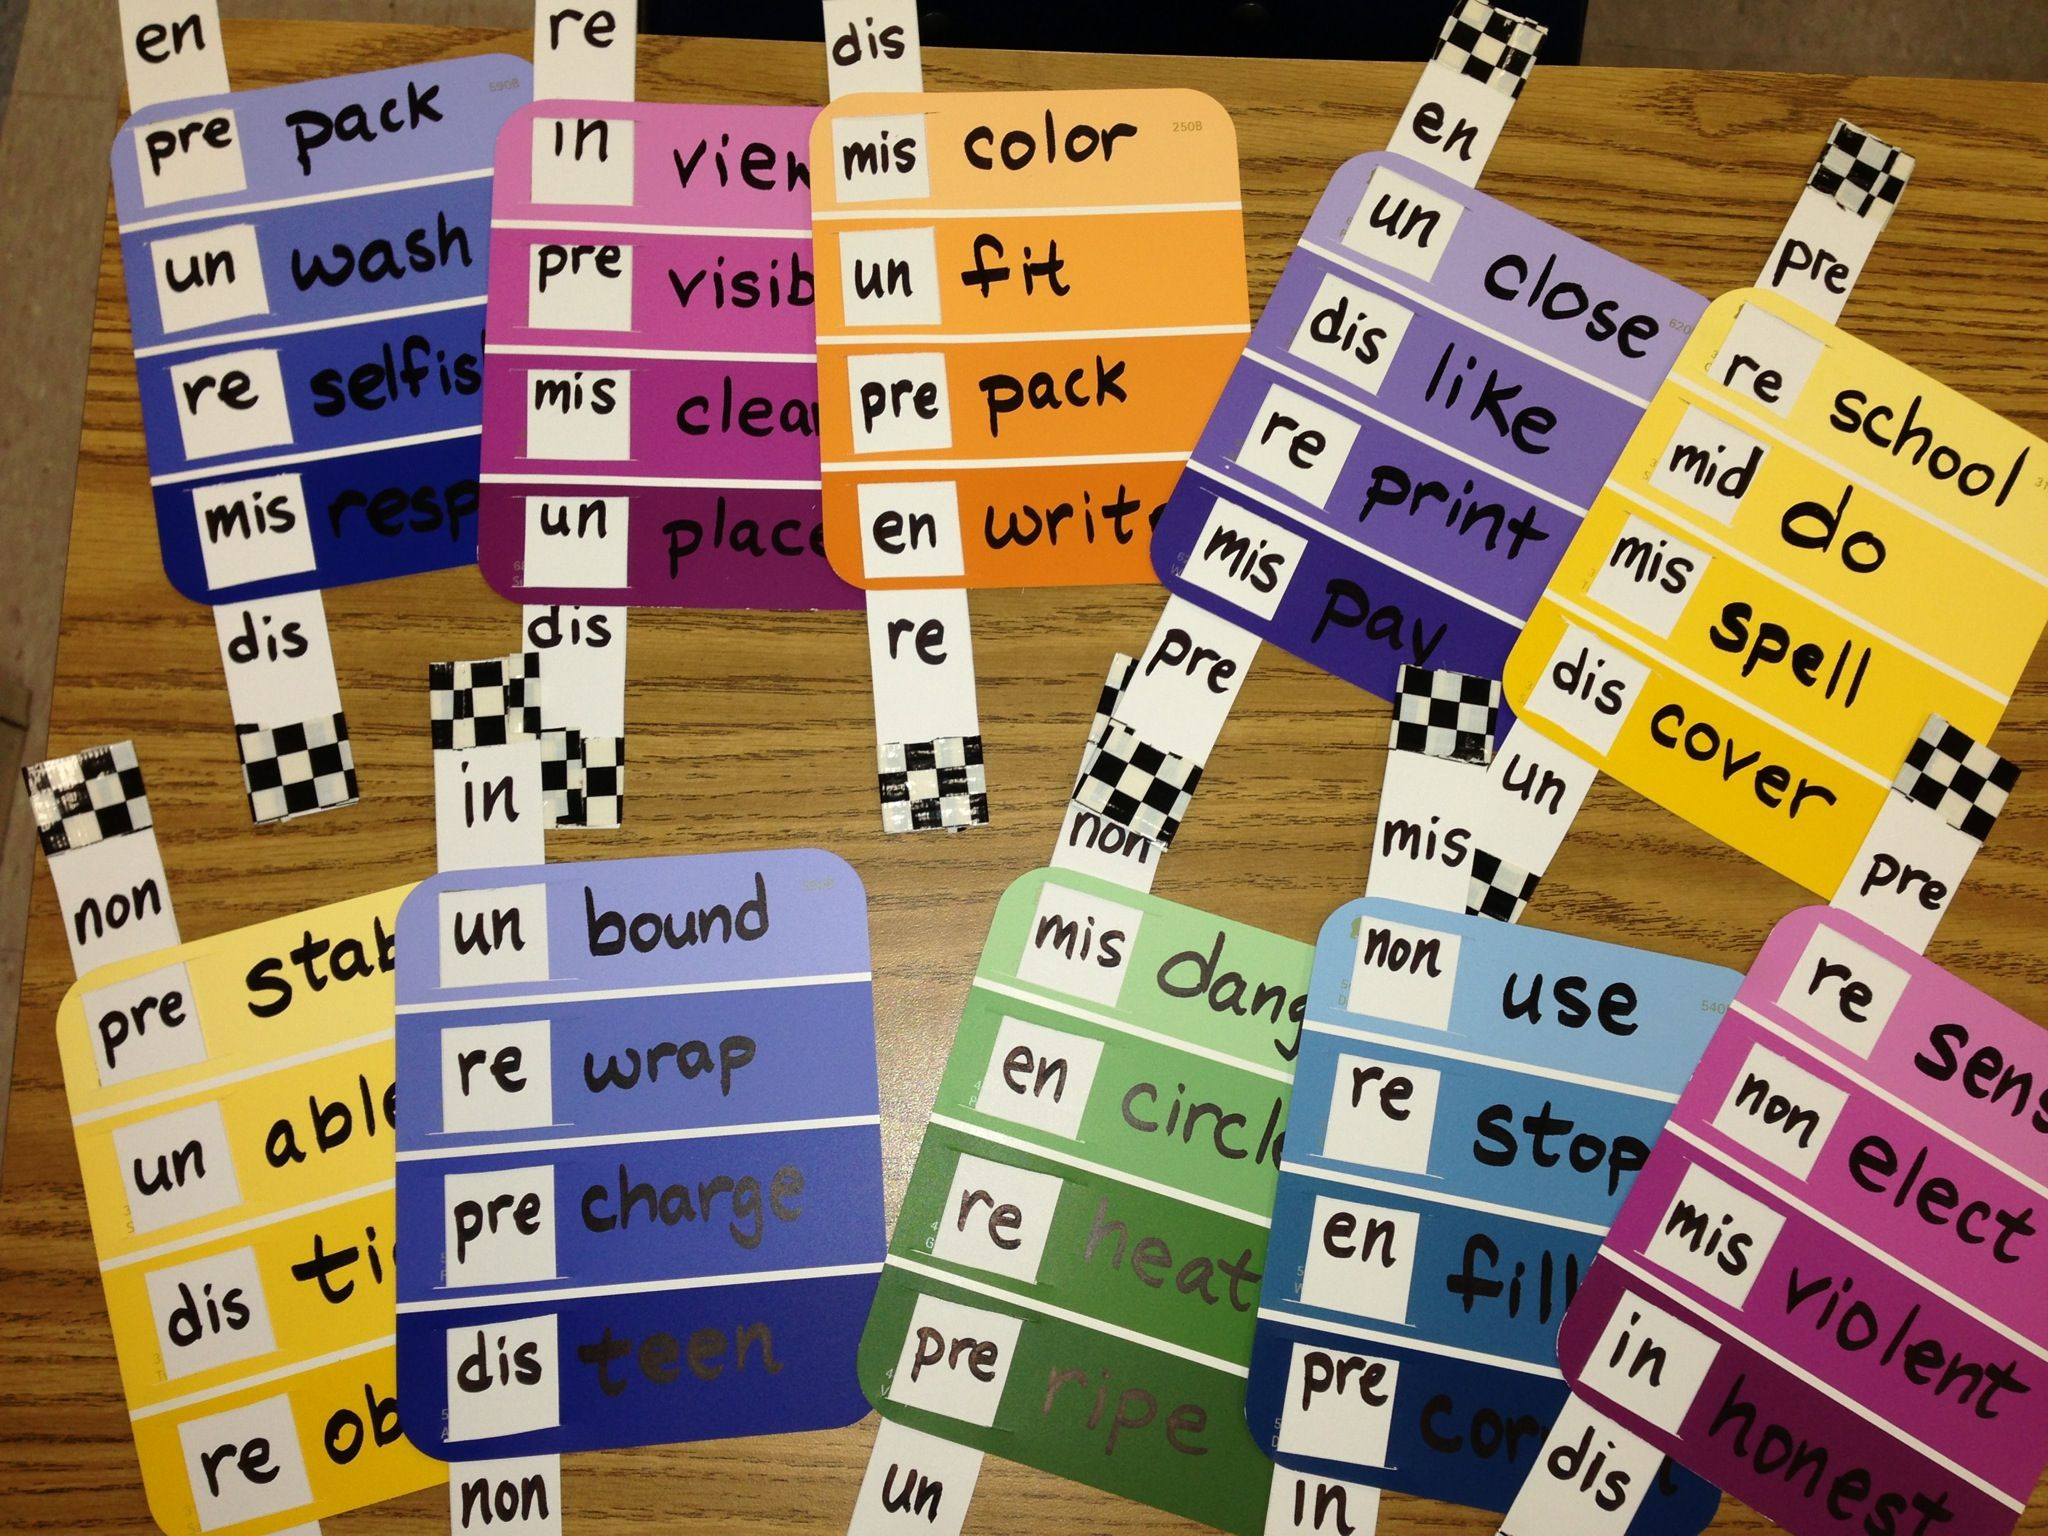 Prefixes And Suffixes On Paint Chip Samples Have Students